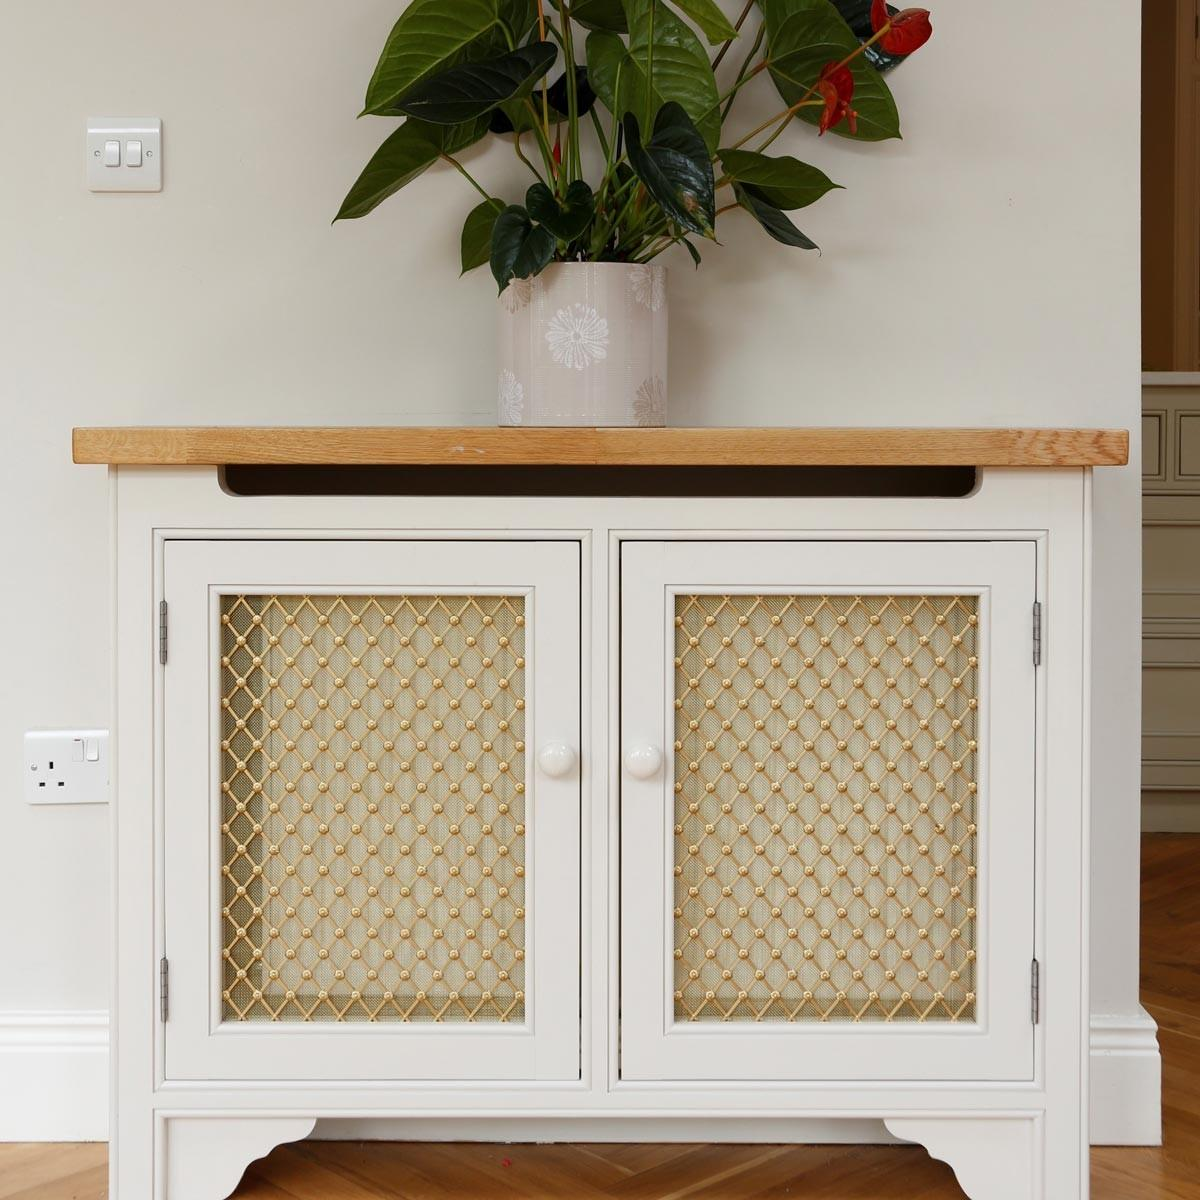 Hide Ugly Radiators These Clever Cover Ideas